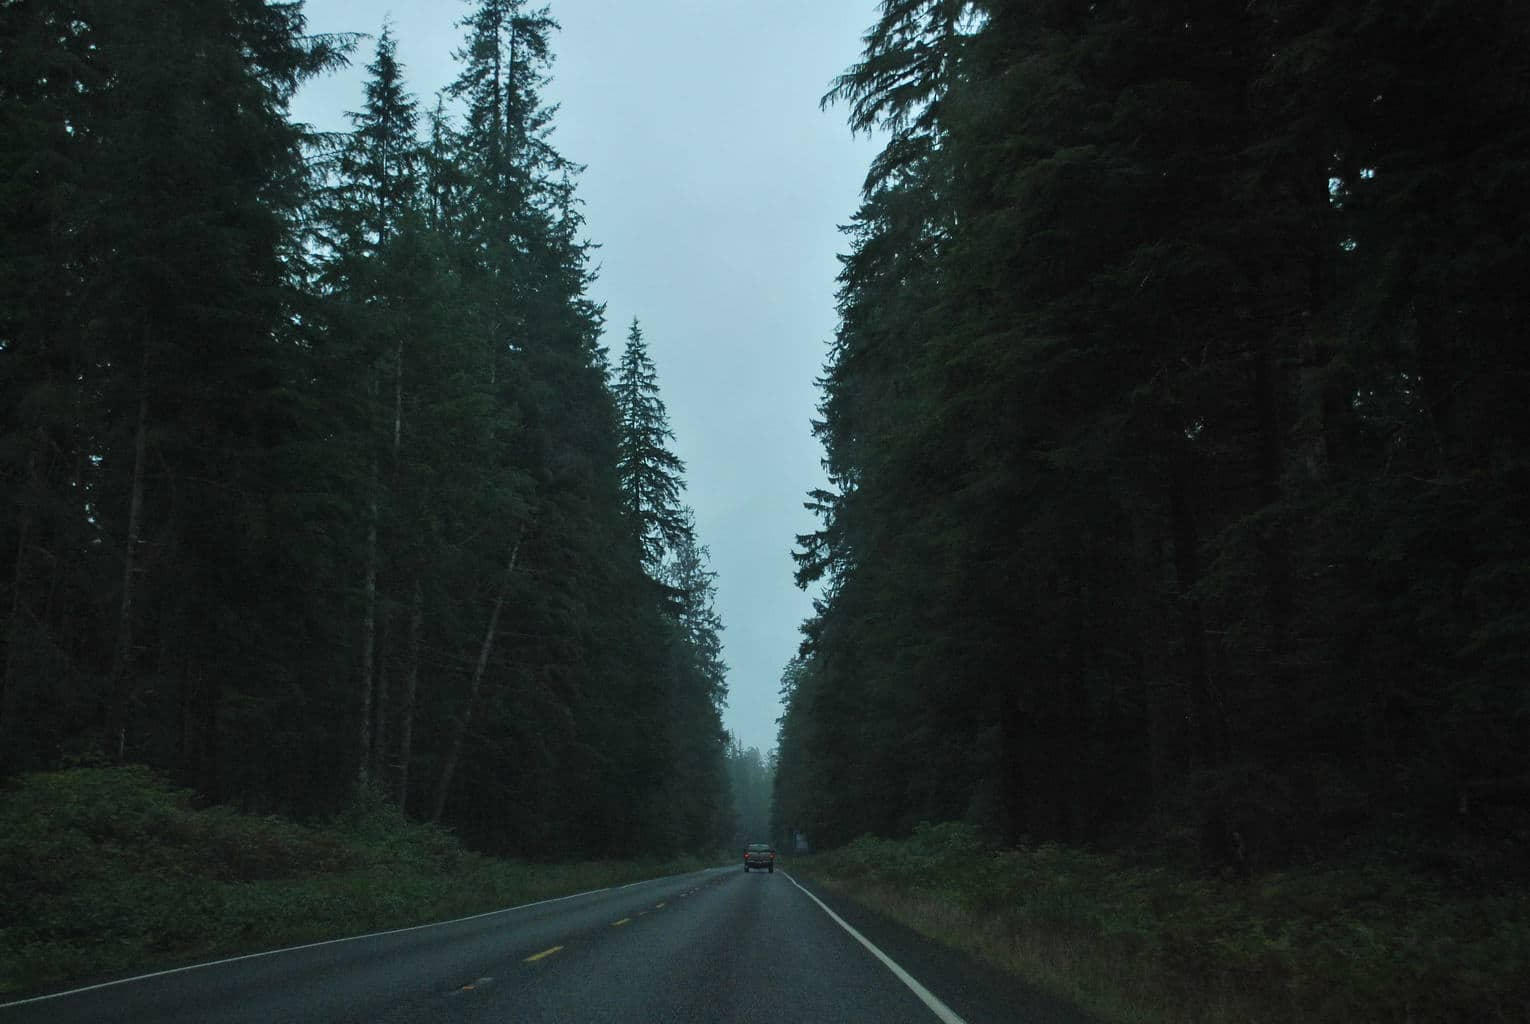 Love the feeling of driving through these trees.